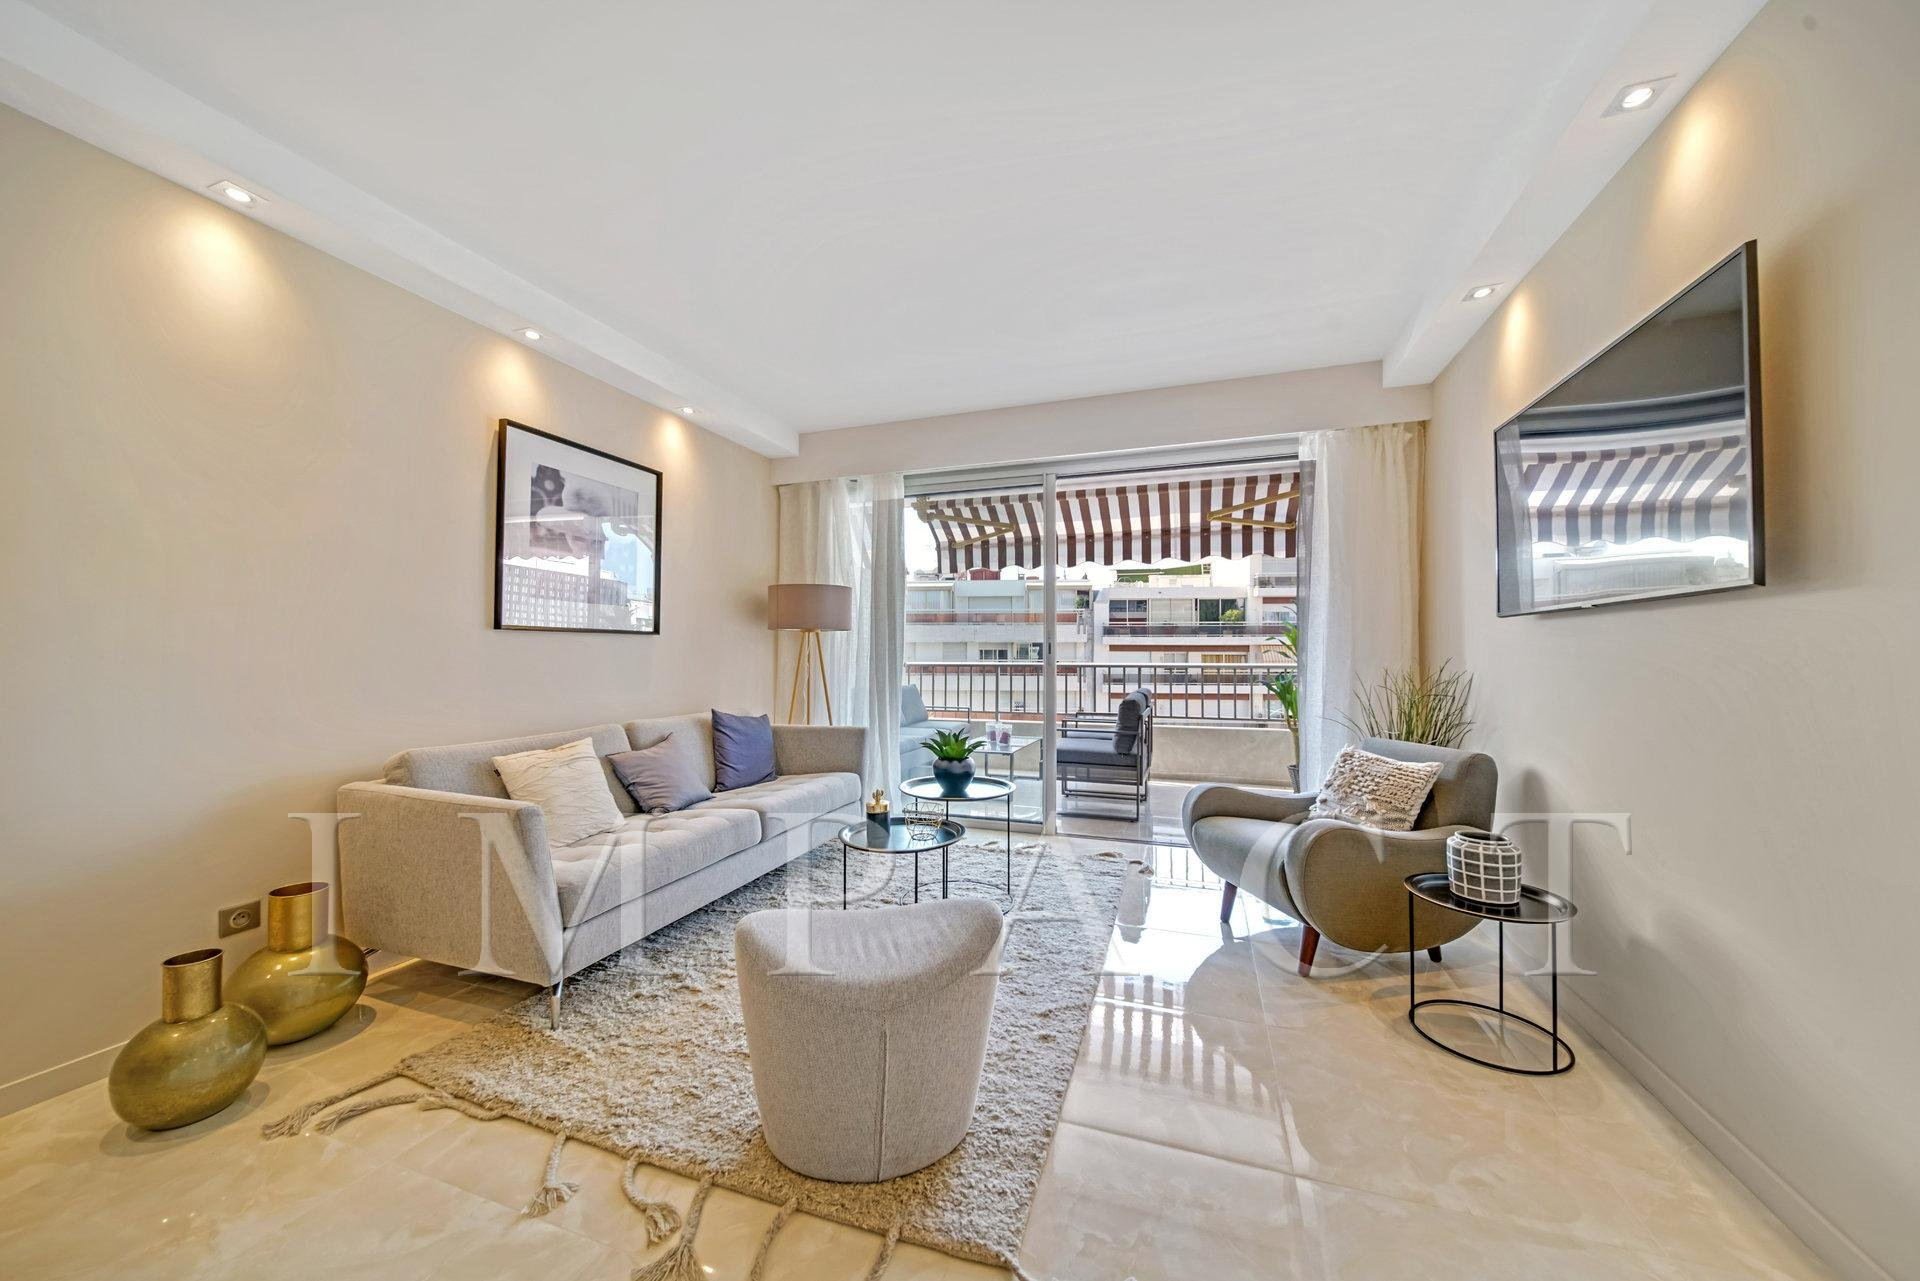 2 Bedrooms apartment for sale Cannes Center